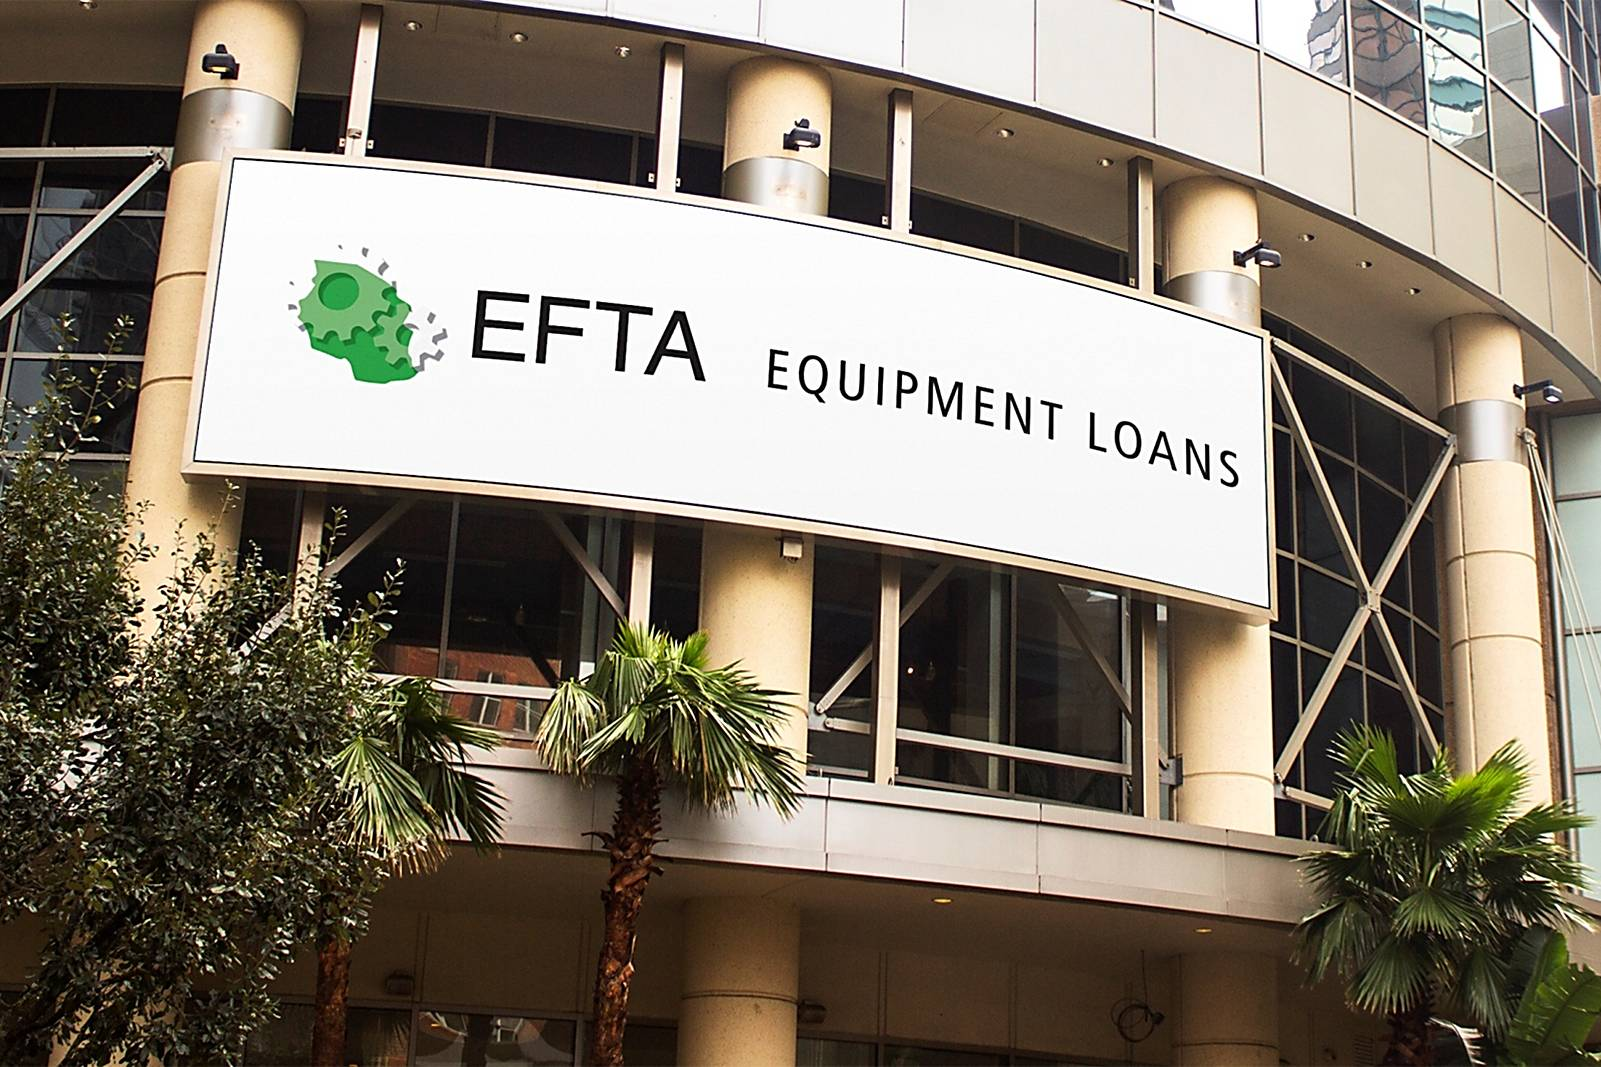 large efta banner on building with trees below